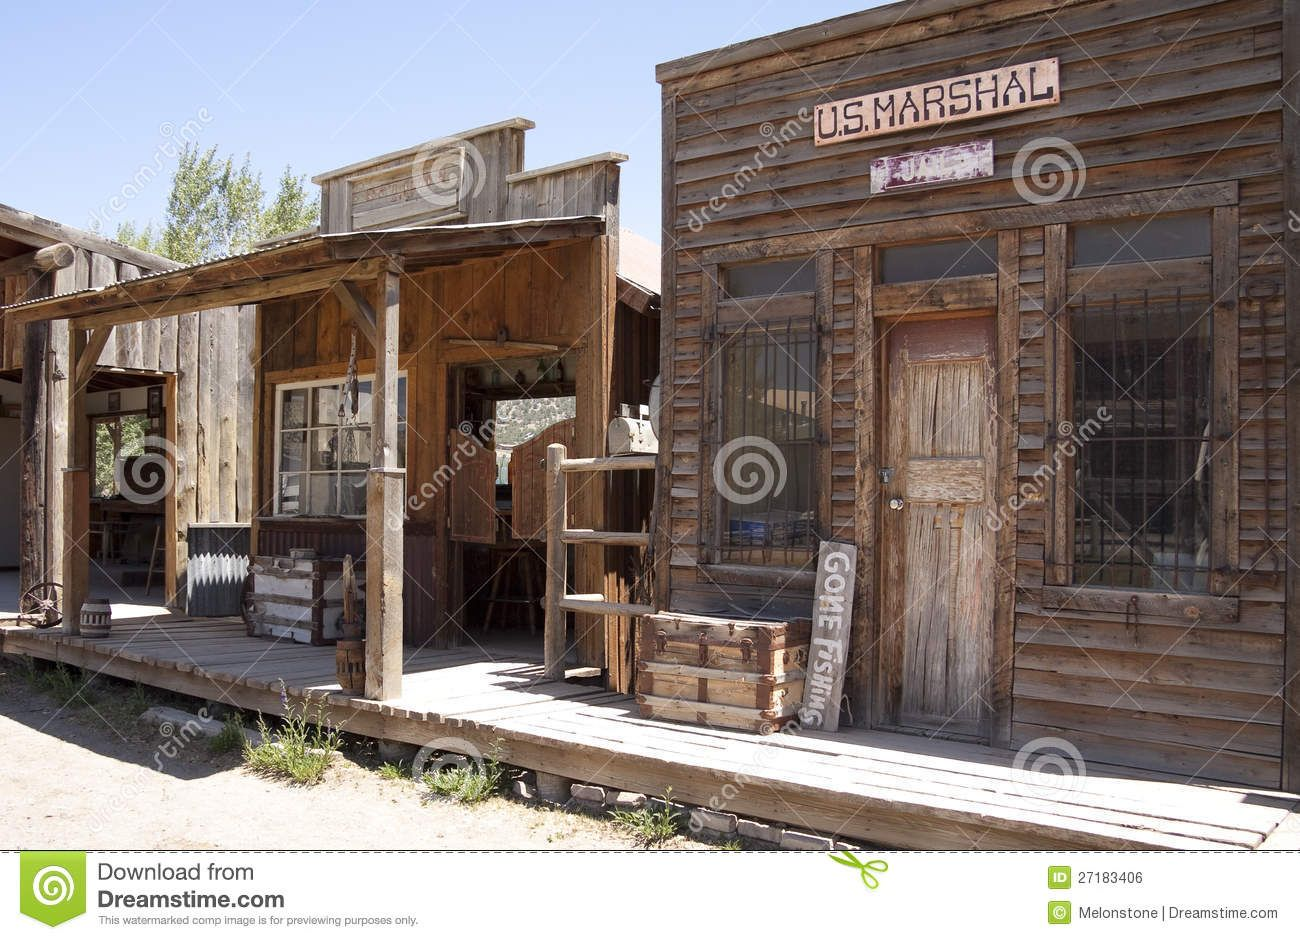 Building Facades Street In Typical American Wild West